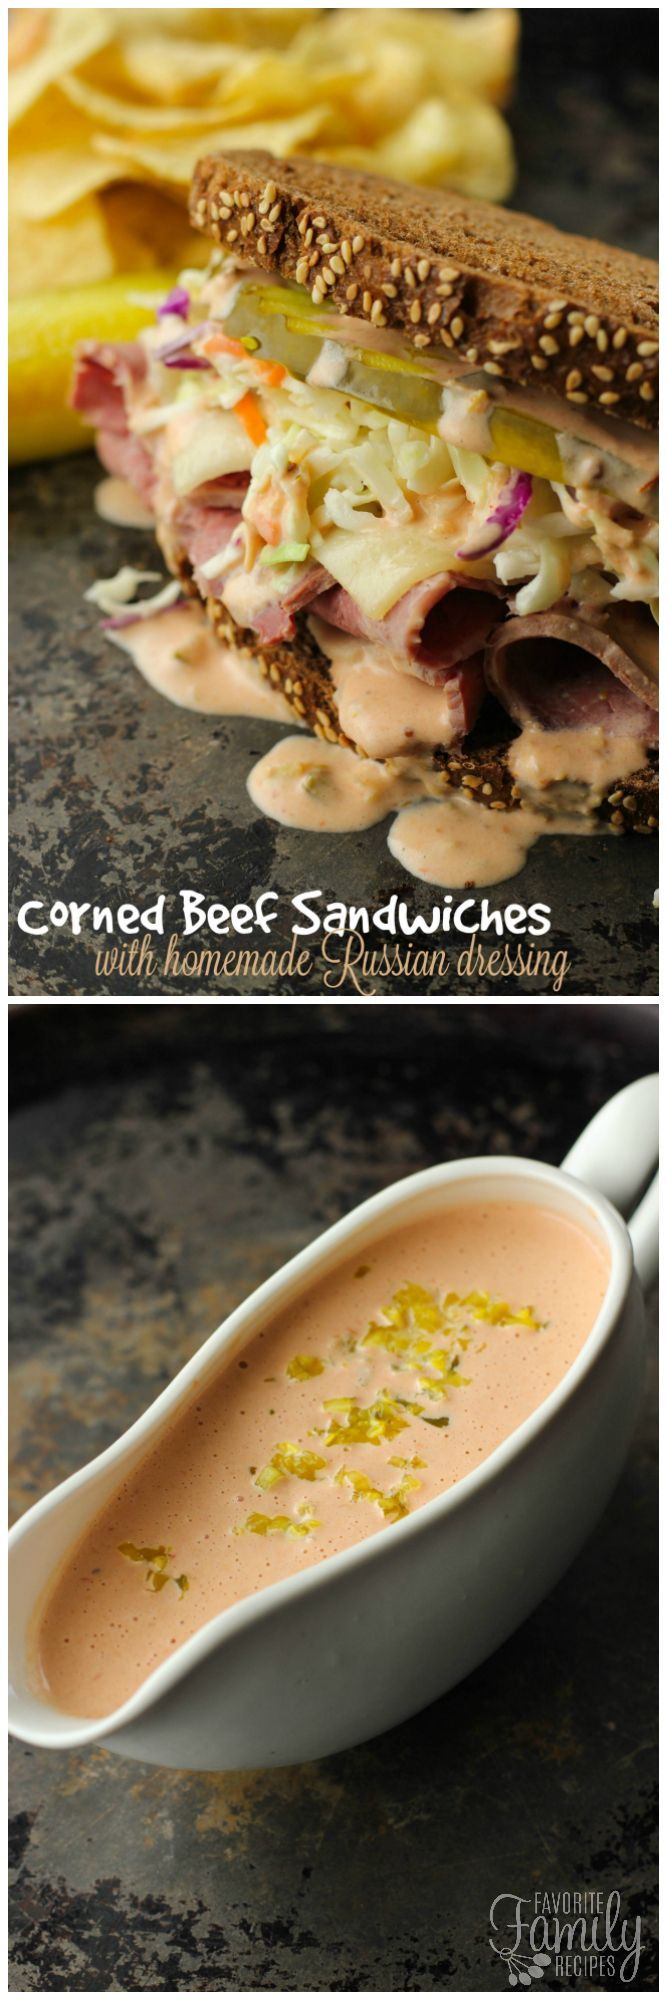 Corned Beef Sandwiches are a tasty Irish sandwich with Russian Dressing. Perfect for leftover corned beef if you are making some up for St. Patrick's Day.